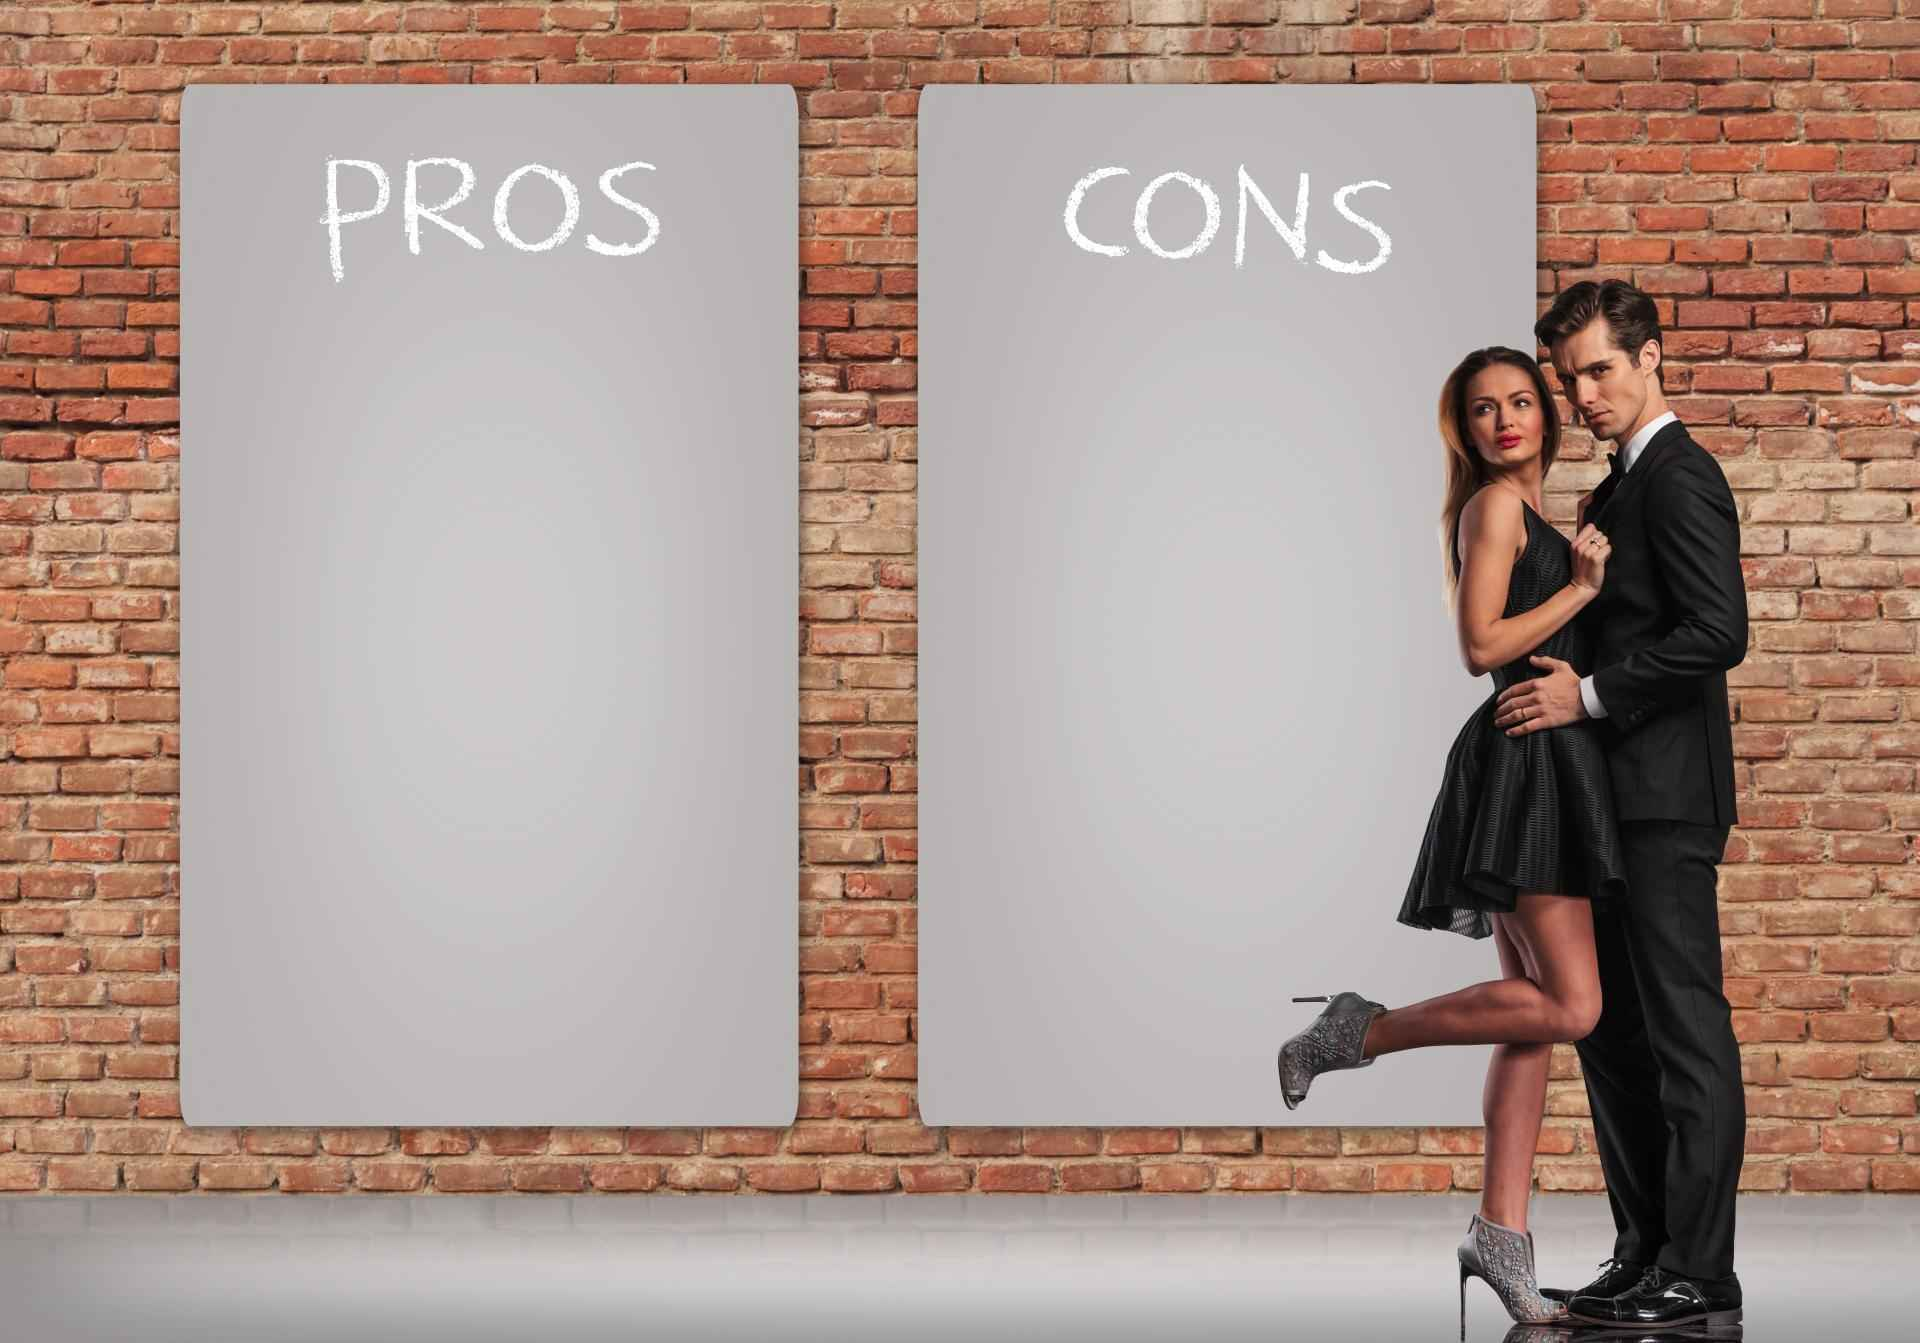 Casual Sex: The Pros & Cons